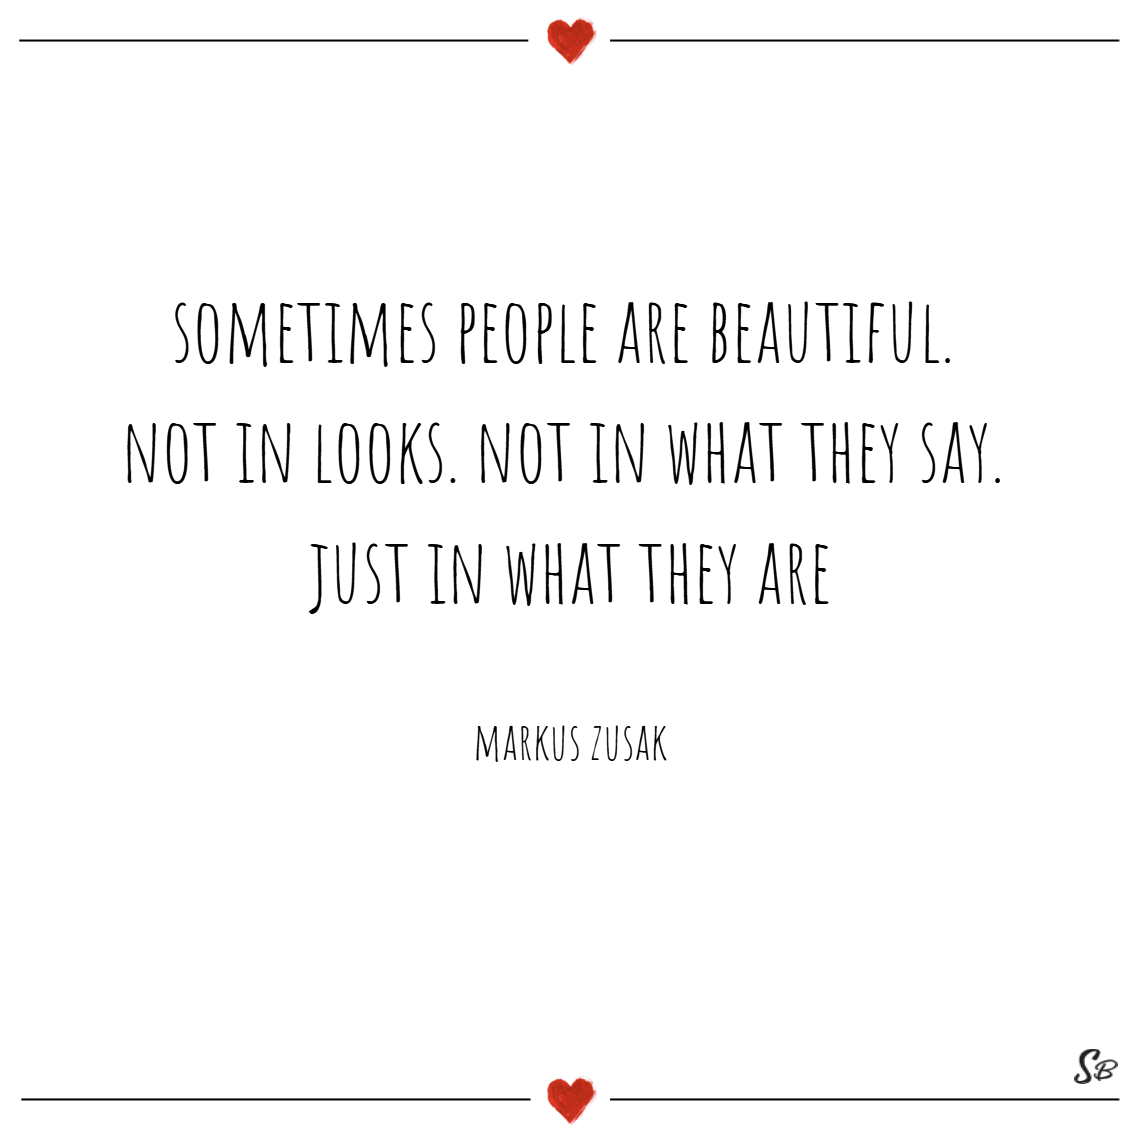 3 Incredible Beauty Quotes That Will Melt Your Heart  Spirit Button